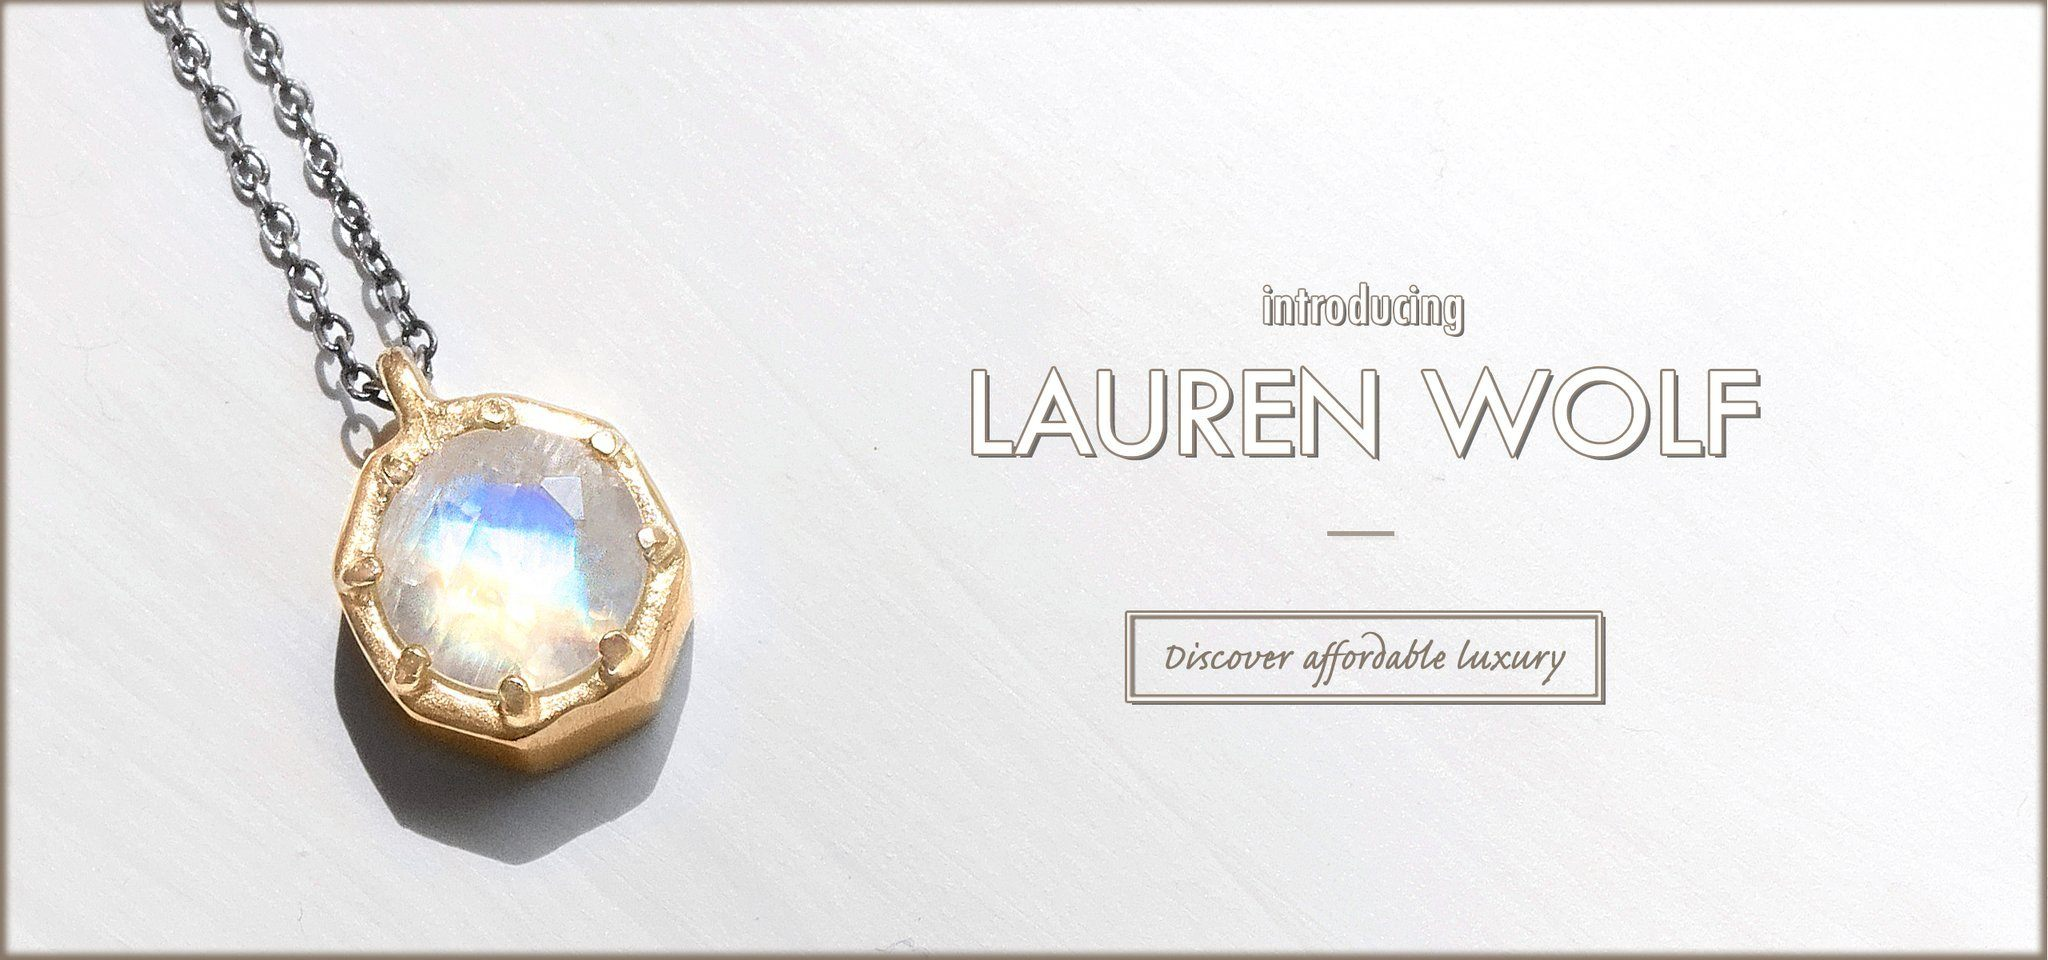 Introducing Lauren Wolf exclusively at Szor Collections